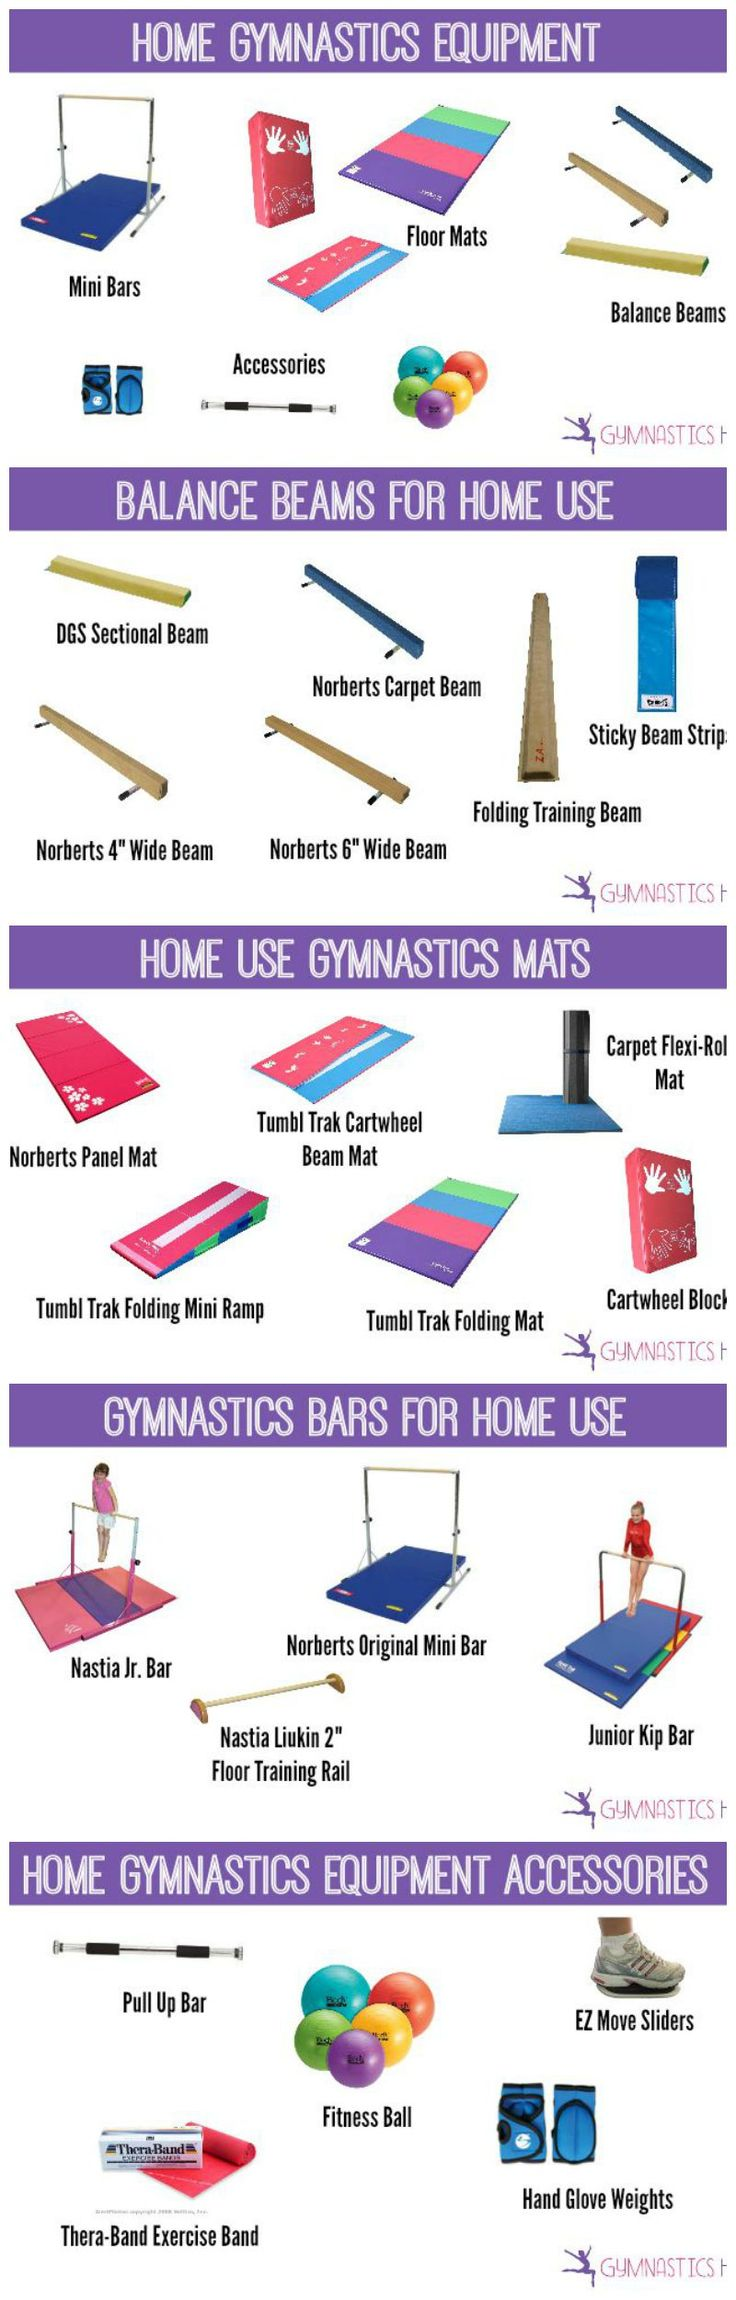 Home Gymnastics Equipment The Best Bars Mats And Beams For Home